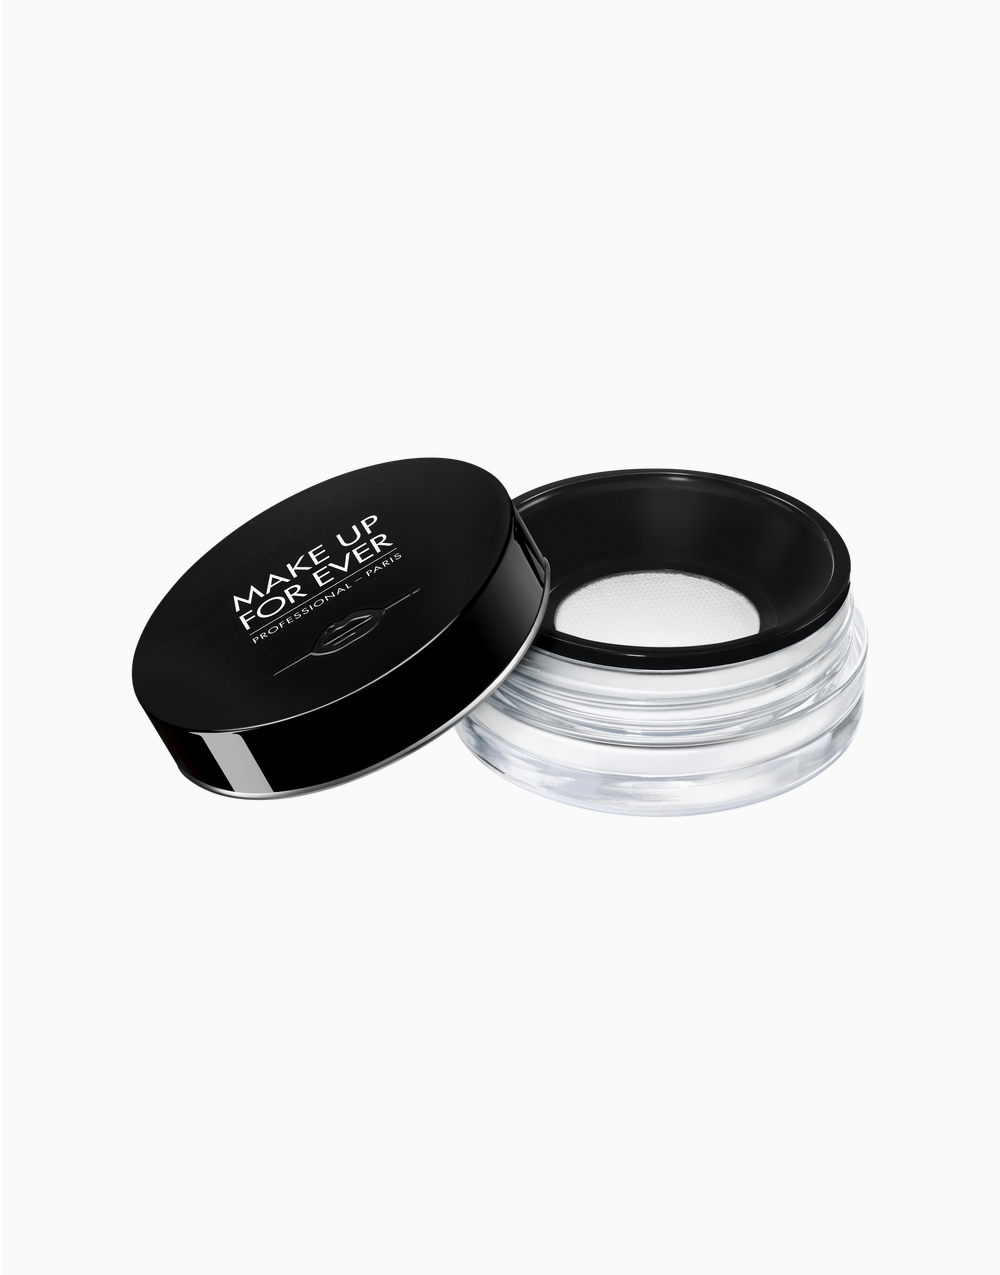 Ultra HD Loose Powder (8.5g) by Make Up For Ever   #01